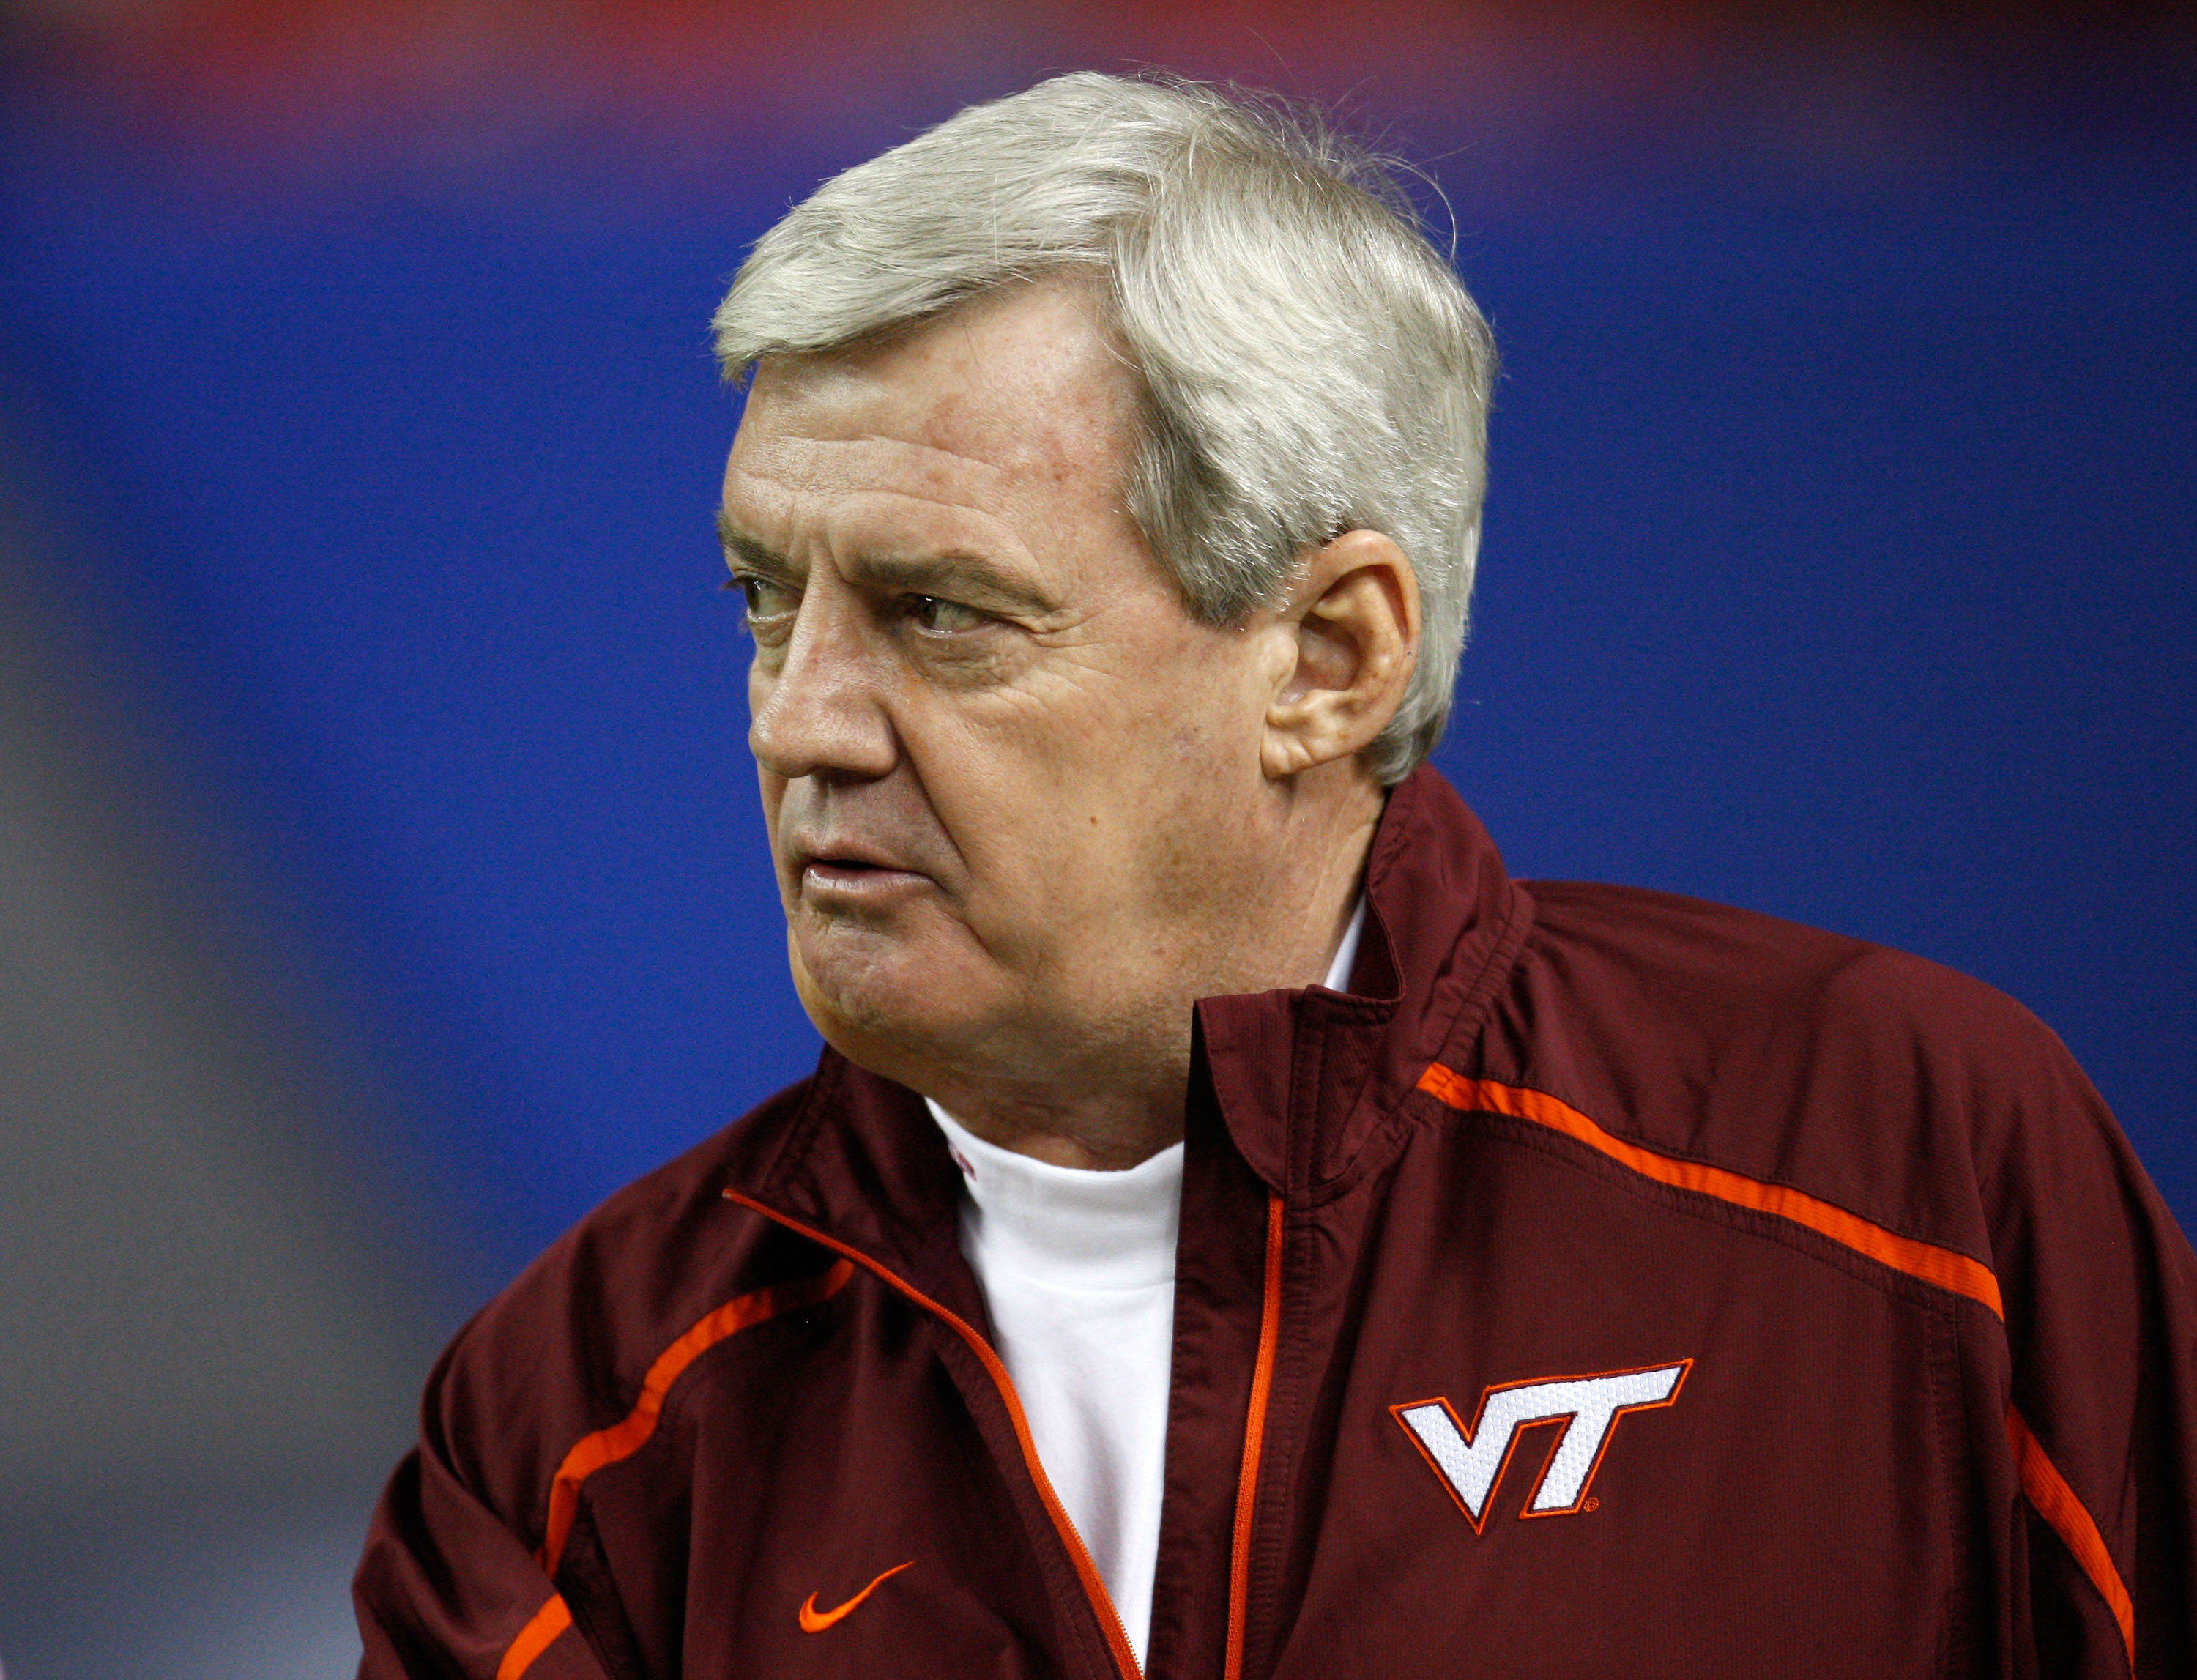 ATLANTA - DECEMBER 31:  Head coach Frank Beamer of the Virginia Tech Hokies watches pre-game warmups before the Chick-Fil-A Bowl against the Tennessee Volunteers at the Georgia Dome on December 31, 2009 in Atlanta, Georgia.  The Hokies beat the Volunteers